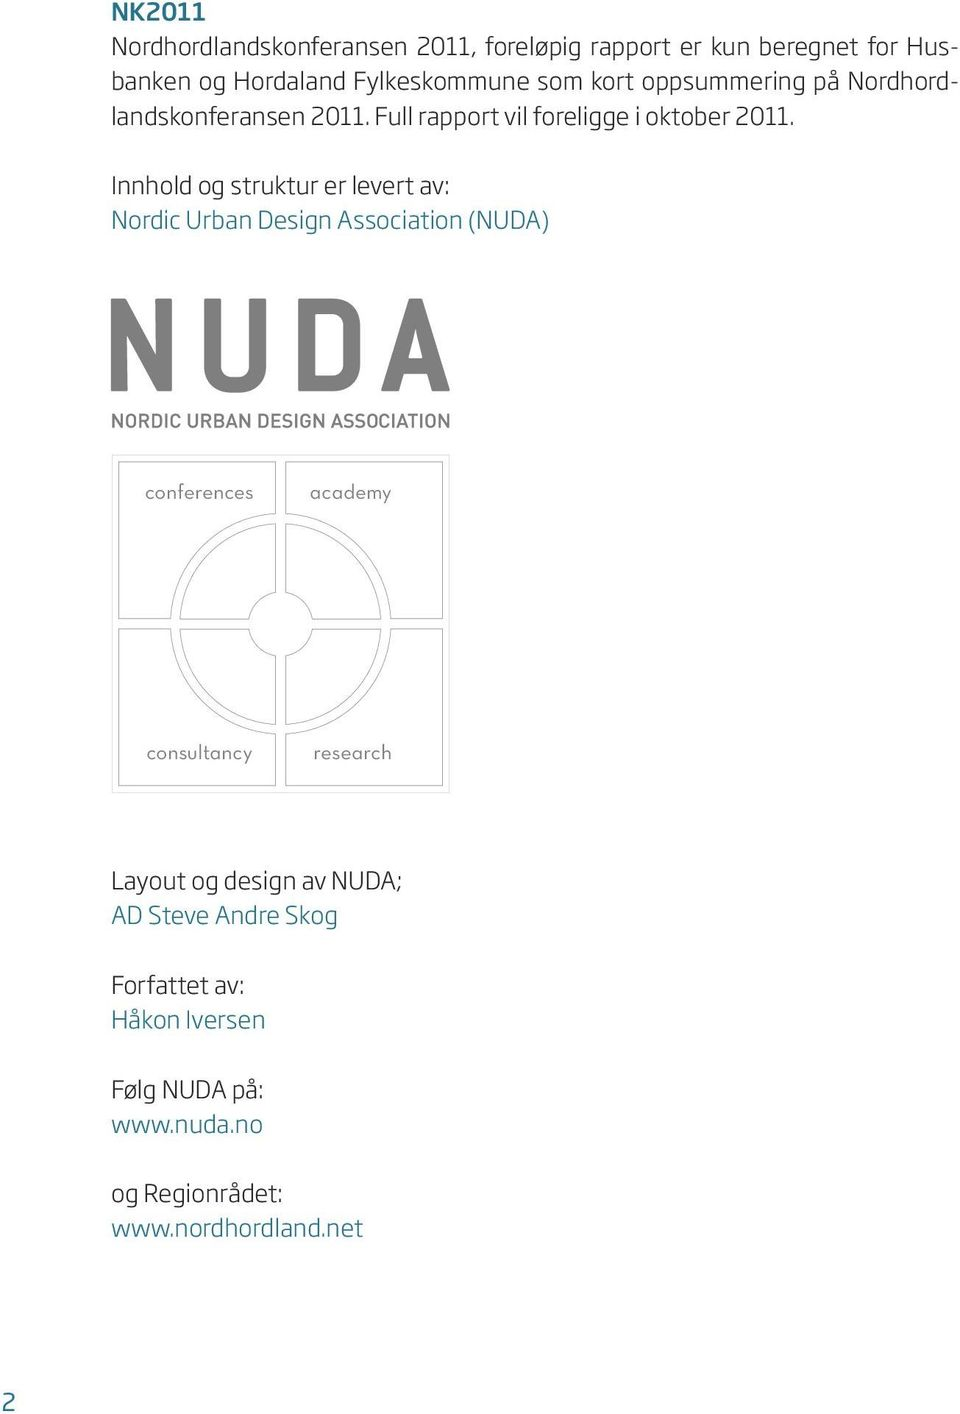 Innhold og struktur er levert av: Nordic Urban Design Association (NUDA) conferences academy consultancy research